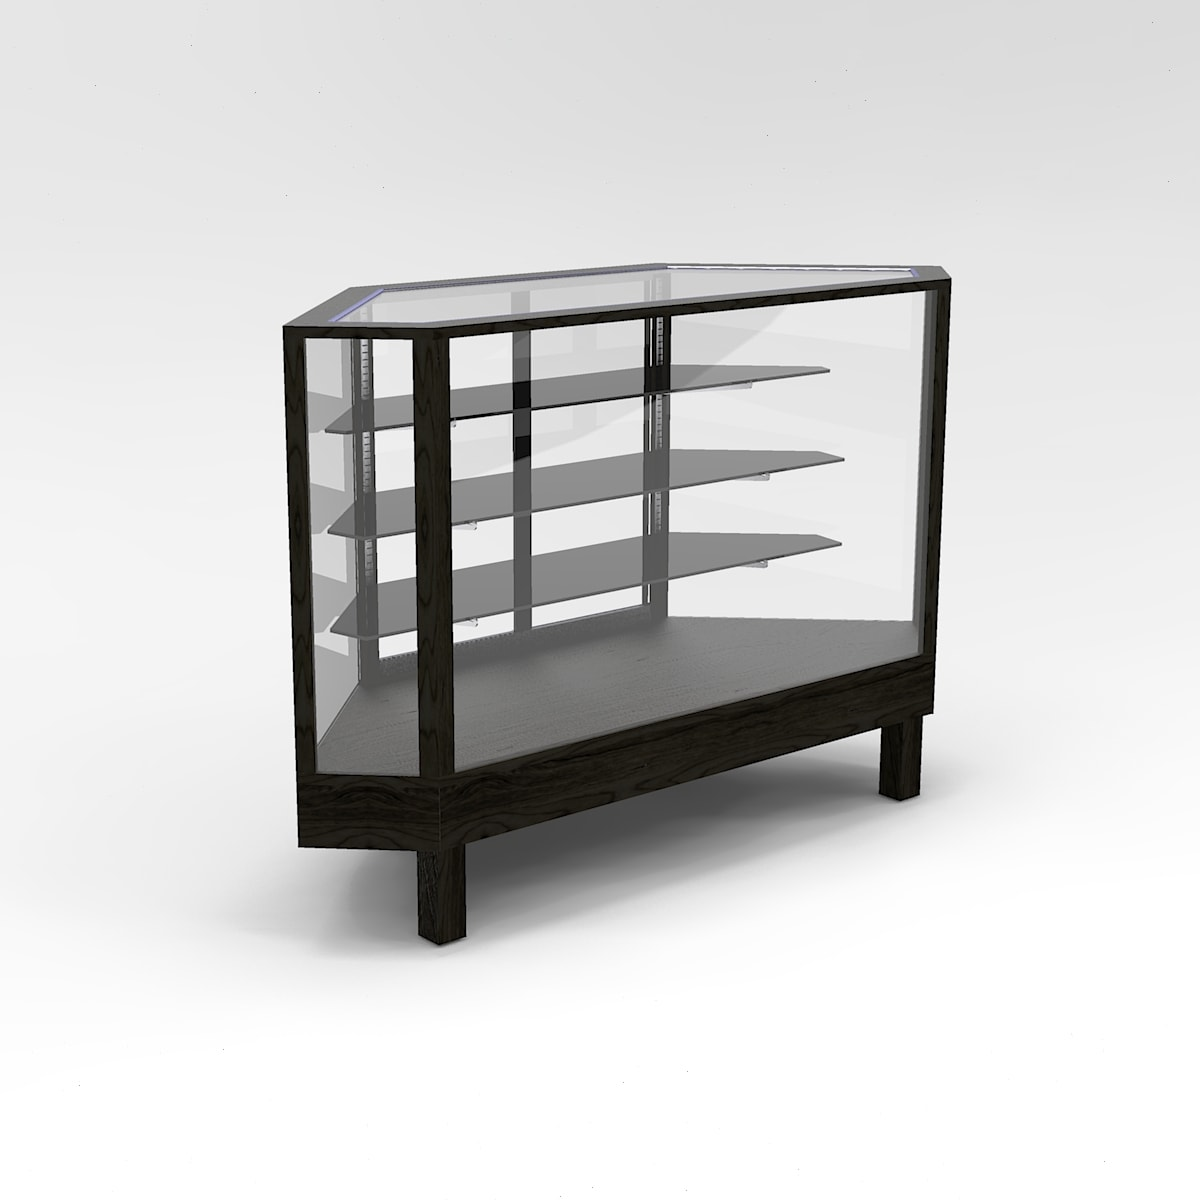 60 Inch Extra Vision Straight Leg Outside Corner Horizontal Display Case to Purchase